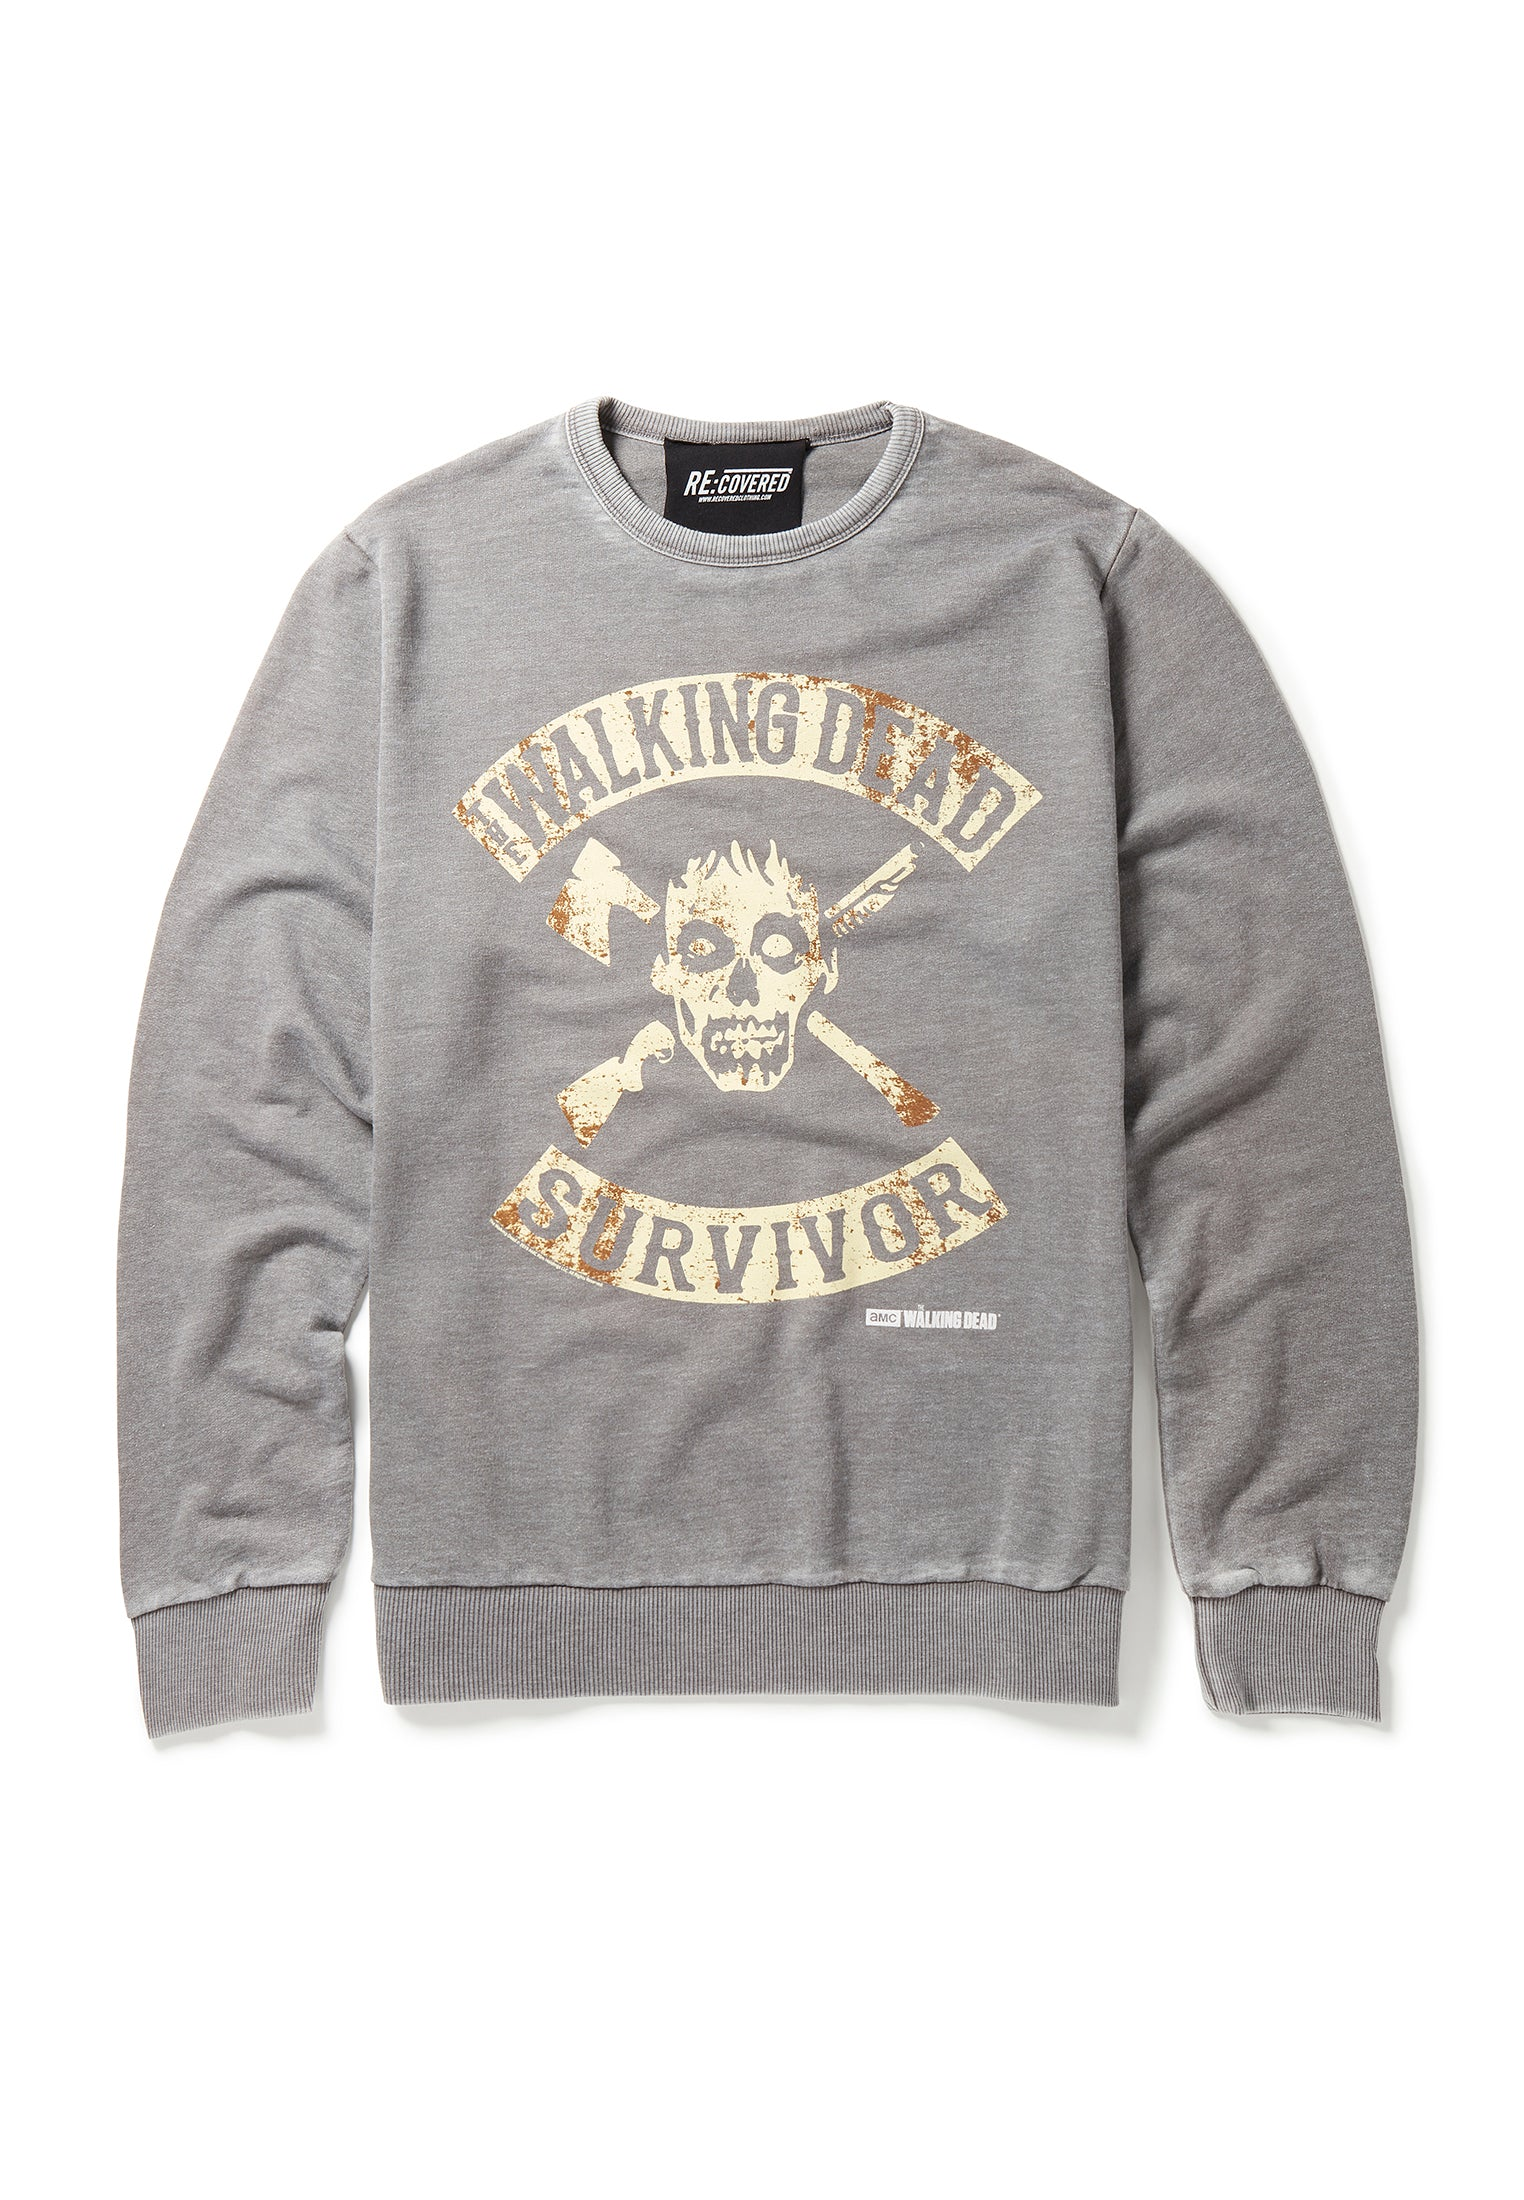 Recovered The Walking Dead Surviour Mid Grey Sweatshirt